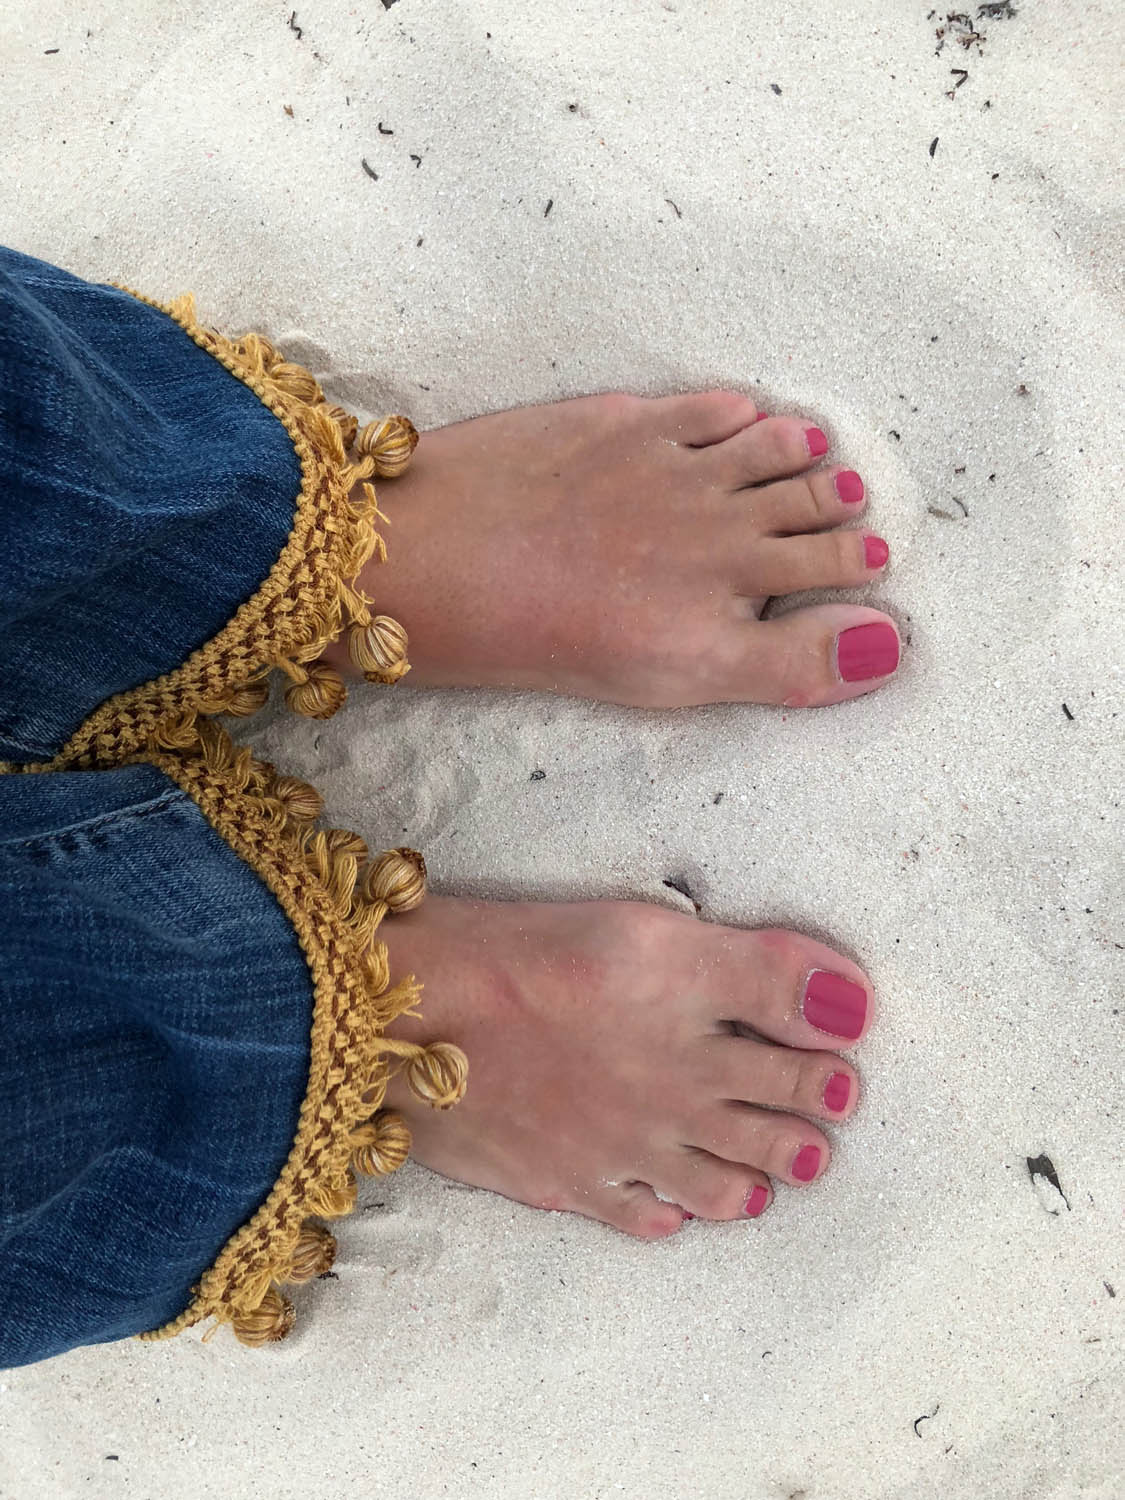 standing in sand with gold trim embellished denim blue jeans